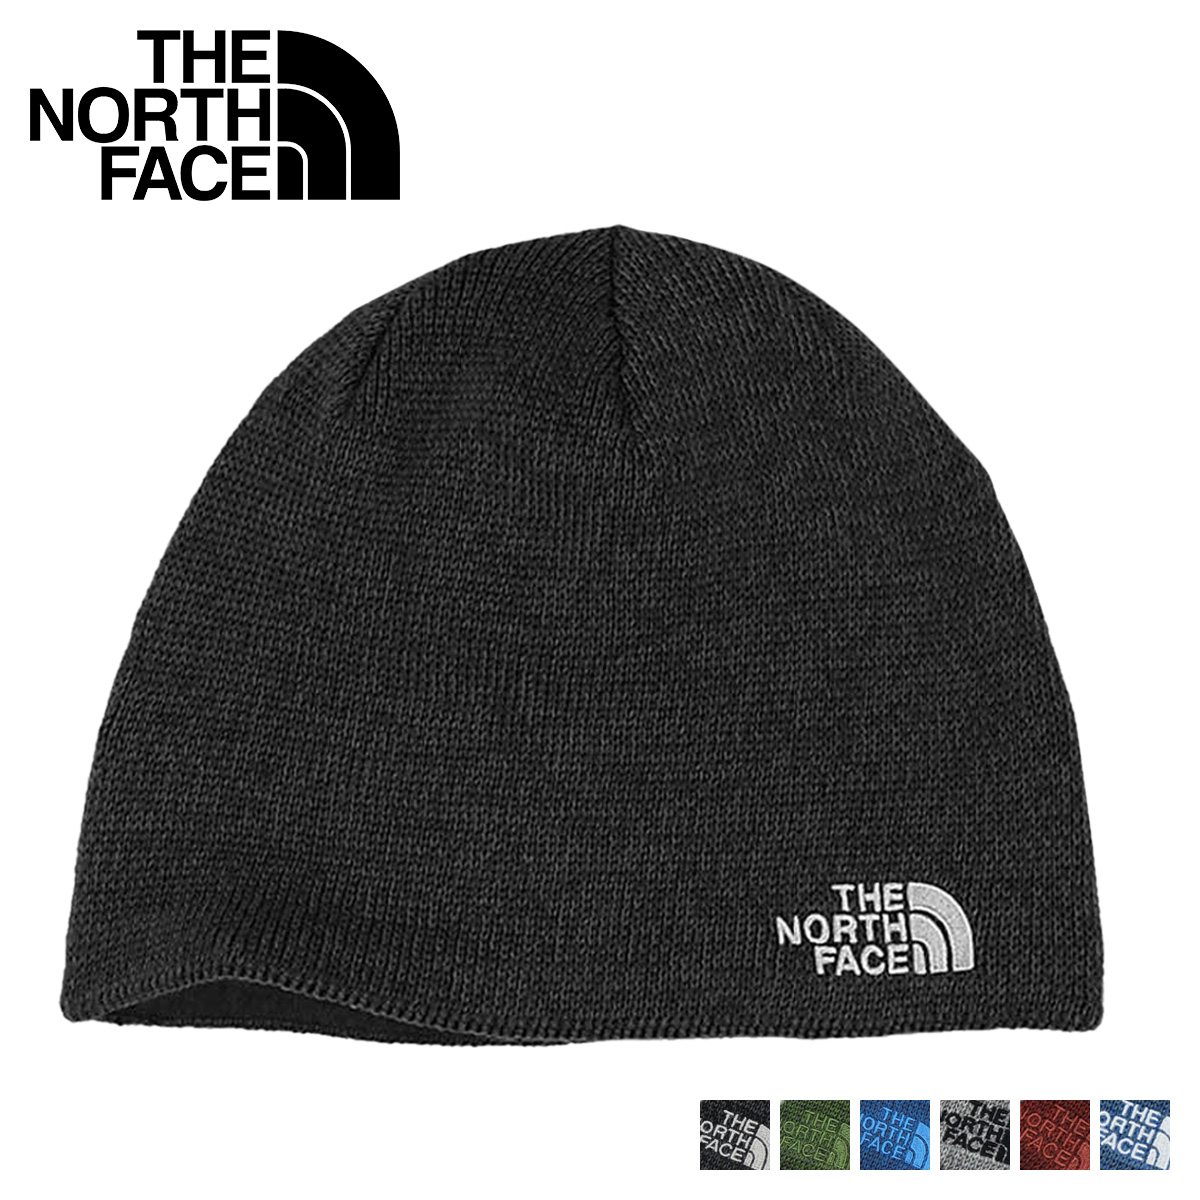 «Soon» «10 7 days stock» north face THE NORTH FACE men s women s knit hat  Beanie knit Cap A5WH5 color JIM BEANIE  10 7 new in stock  f638c7656b1